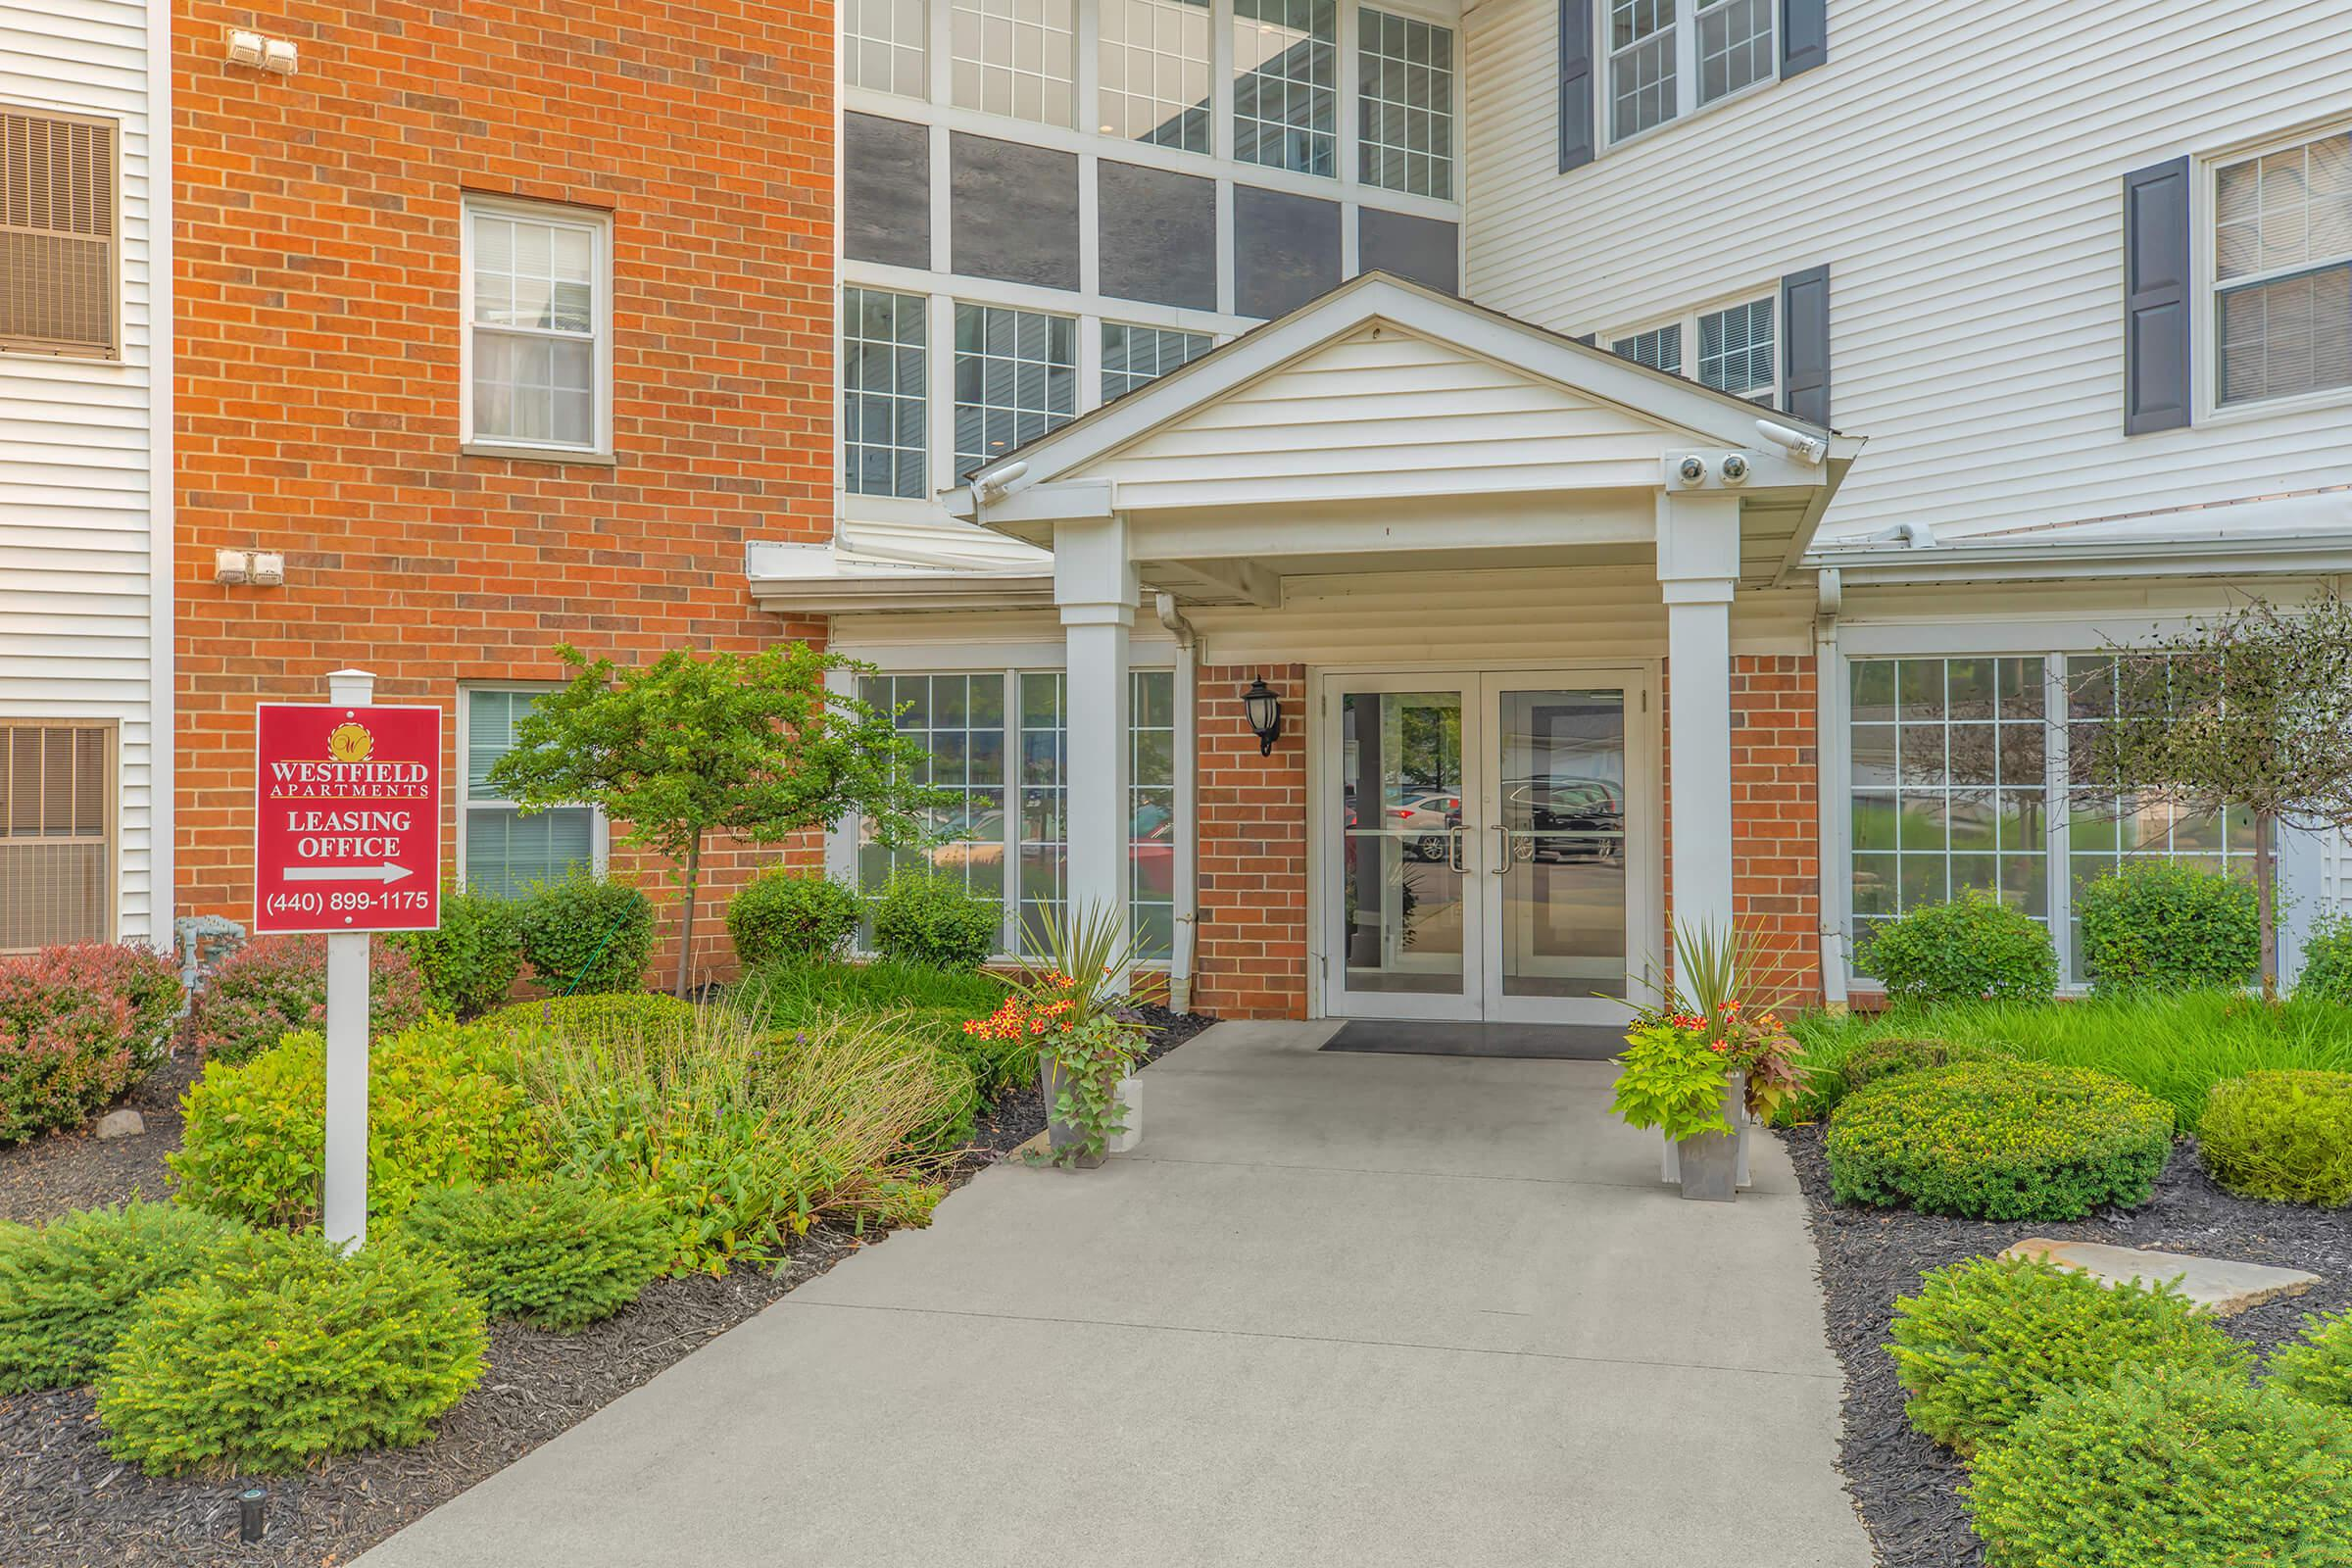 WE CAN'T WAIT TO MEET YOU AT WESTFIELD APARTMENTS